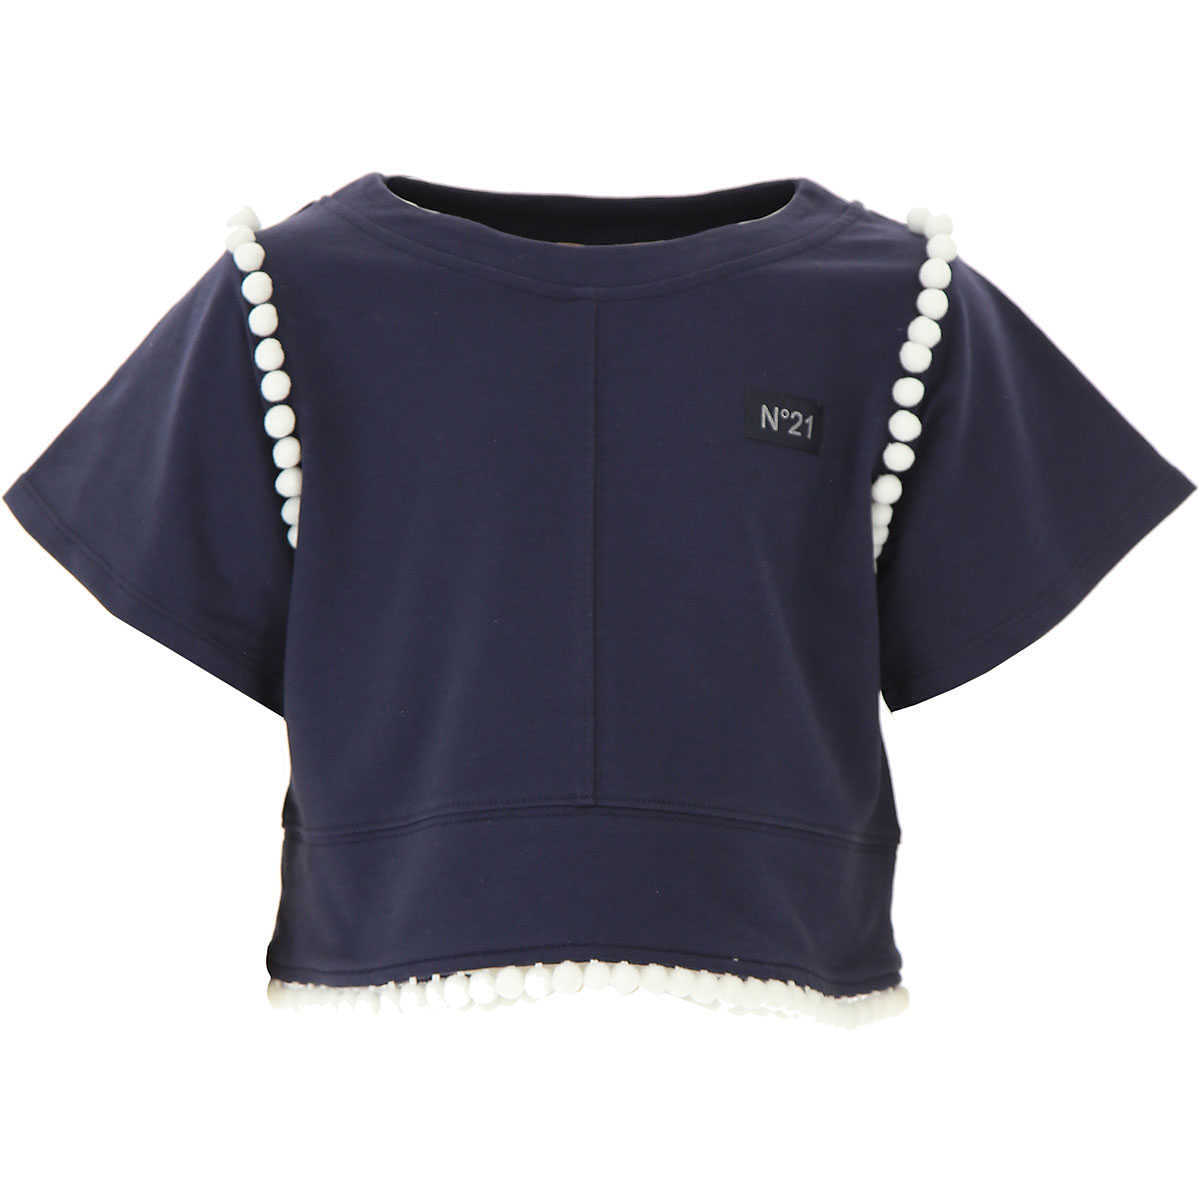 NO 21 Tops On Sale in Outlet Blue UK - GOOFASH - Womens TOPS